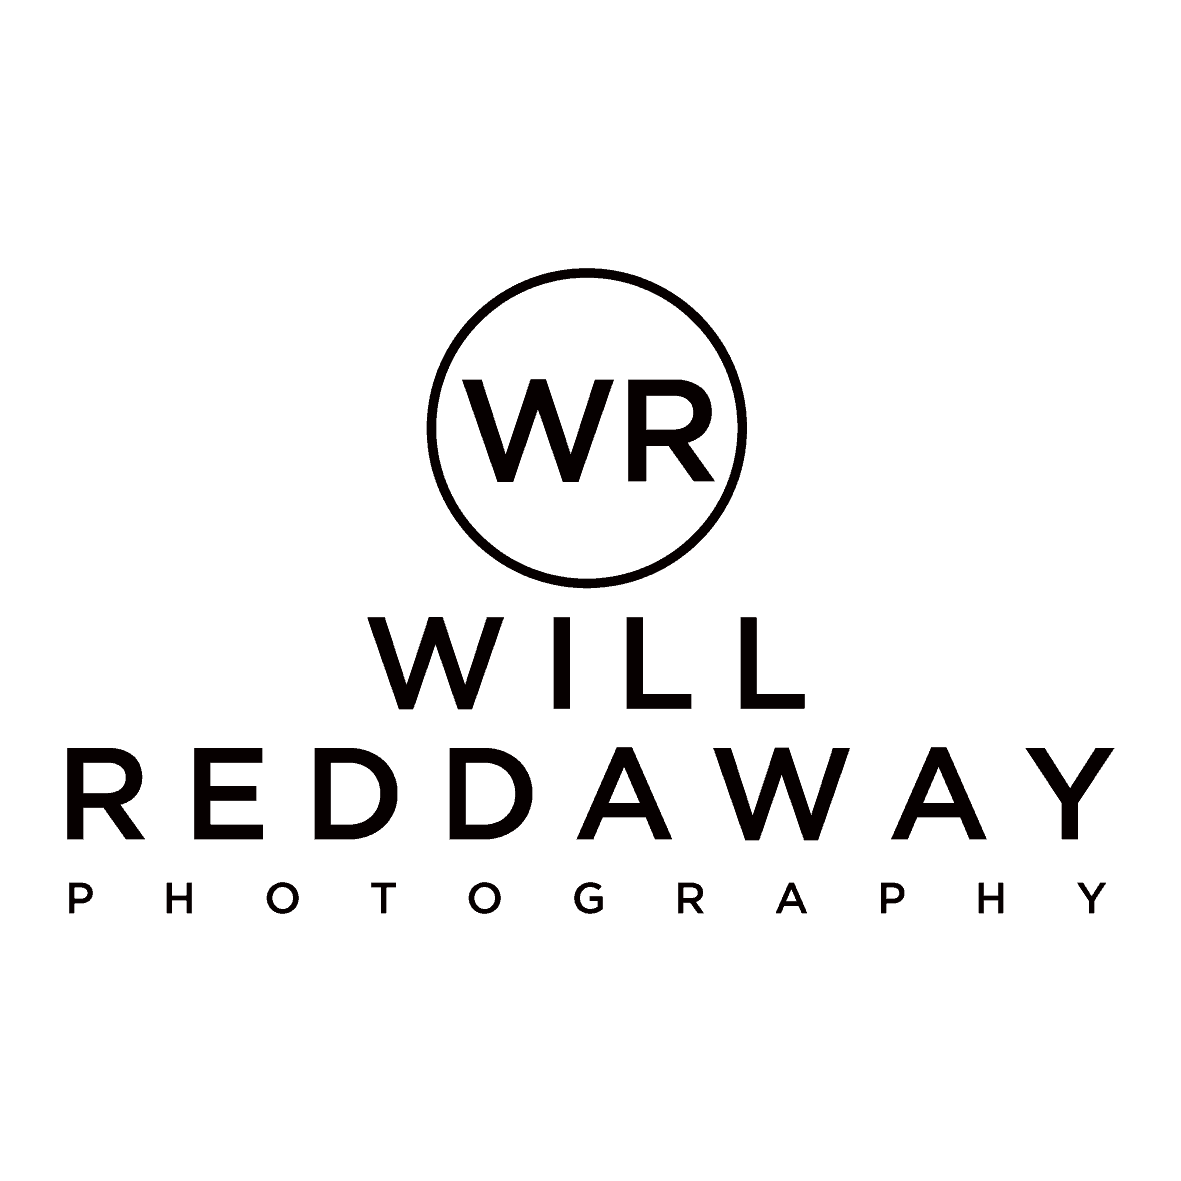 WR Photography